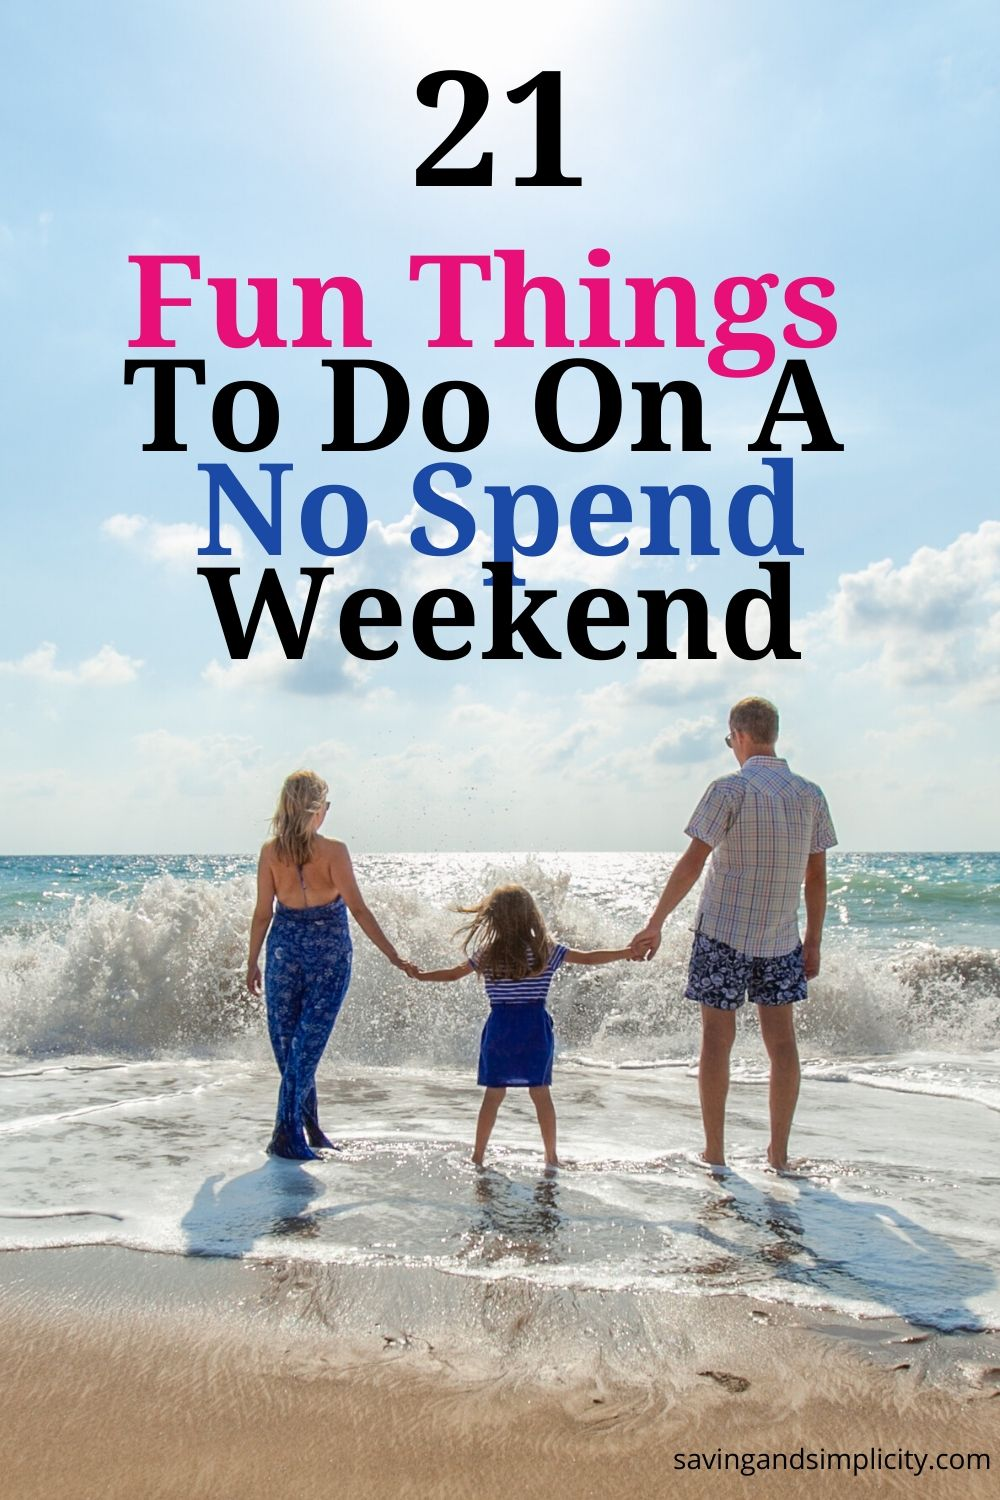 fun things to do on a no spend weekend